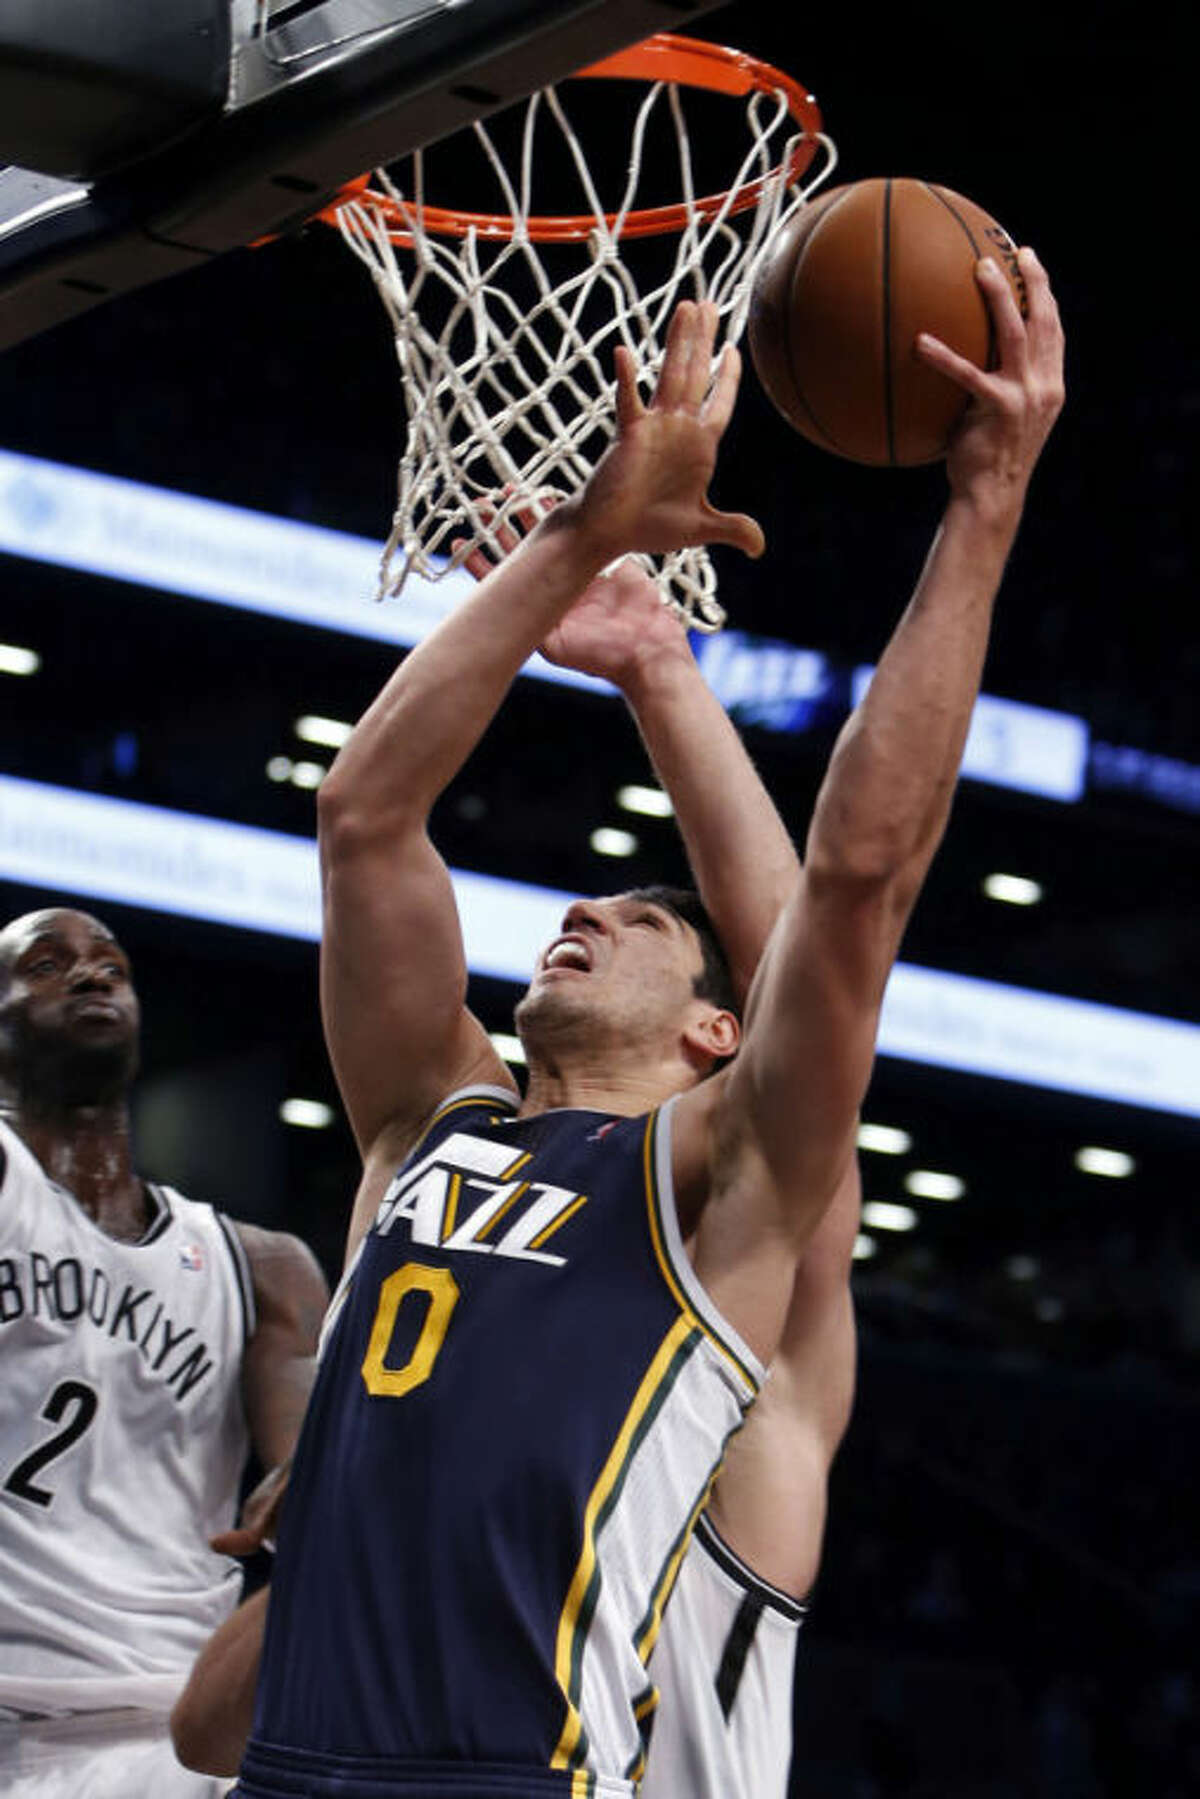 Utah Jazz's Enes Kanter (0)goes to the basket against the Brooklyn Nets' Kevin Garnett (2) and Brook Lopez during the first half of an NBA basketball game Tuesday, Nov. 5, 2013, in New York. (AP Photo/Jason DeCrow)